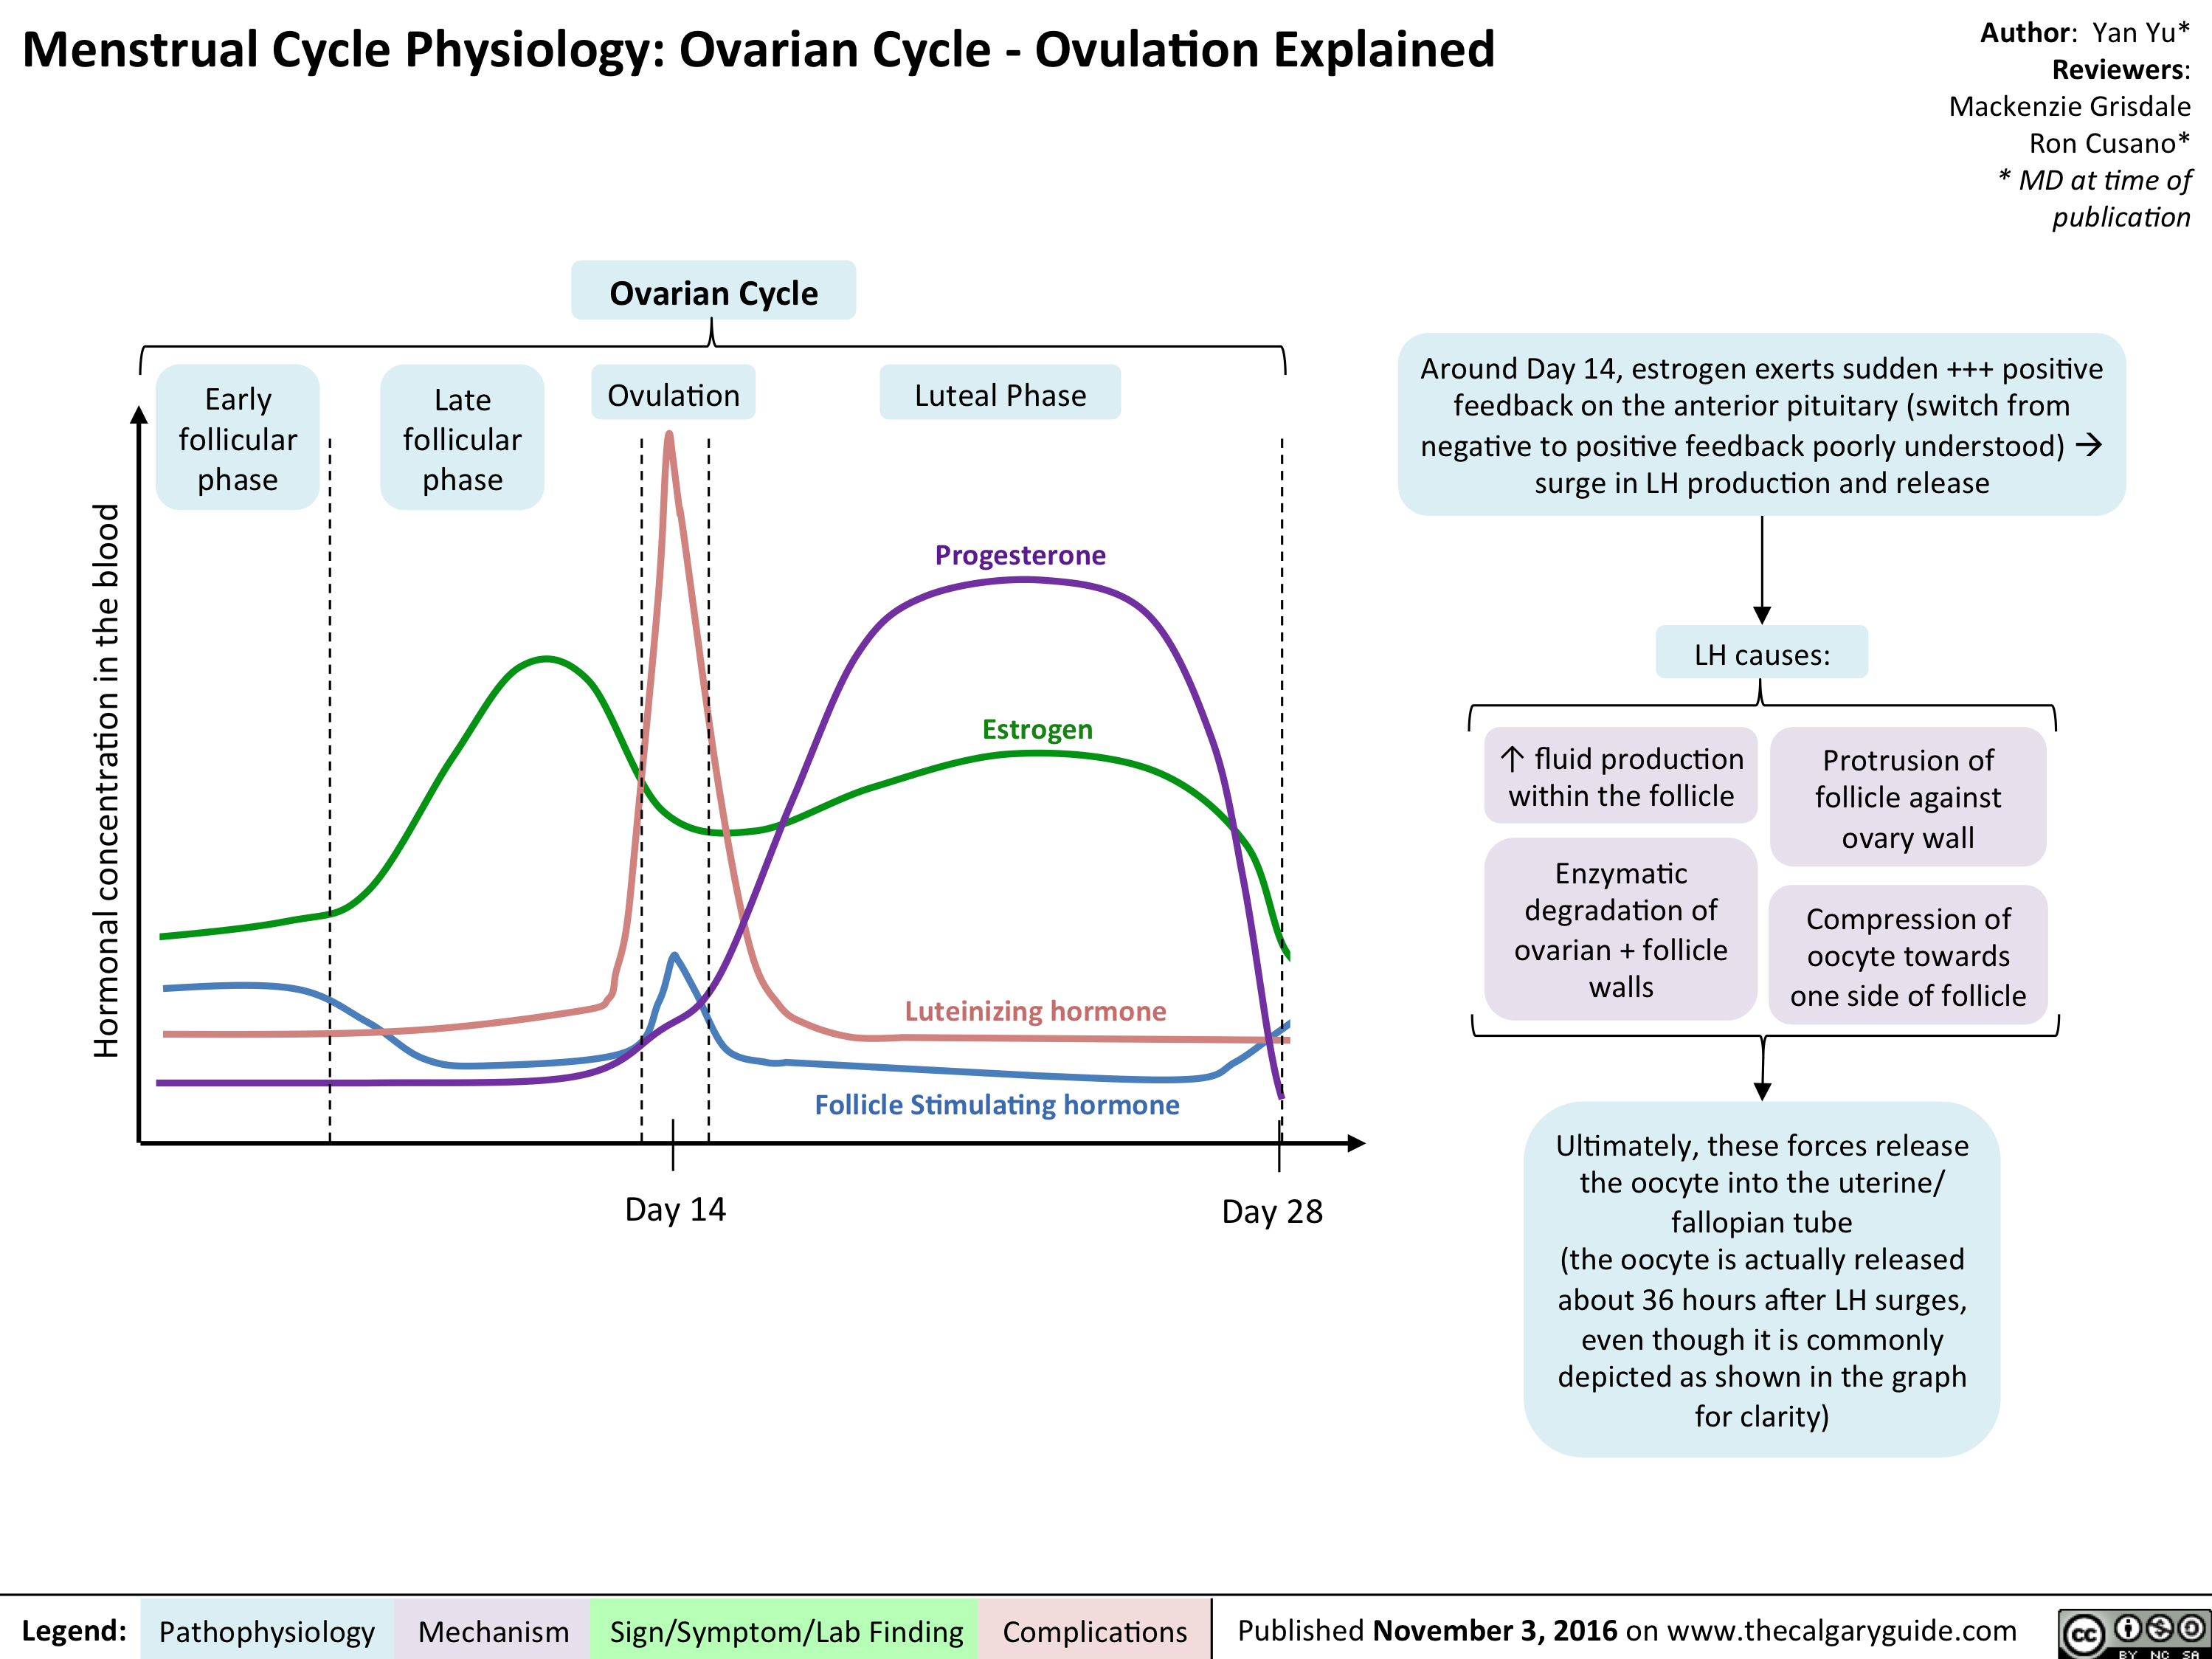 finalized-mg-rc-yy-menstrual-cycle-physiology